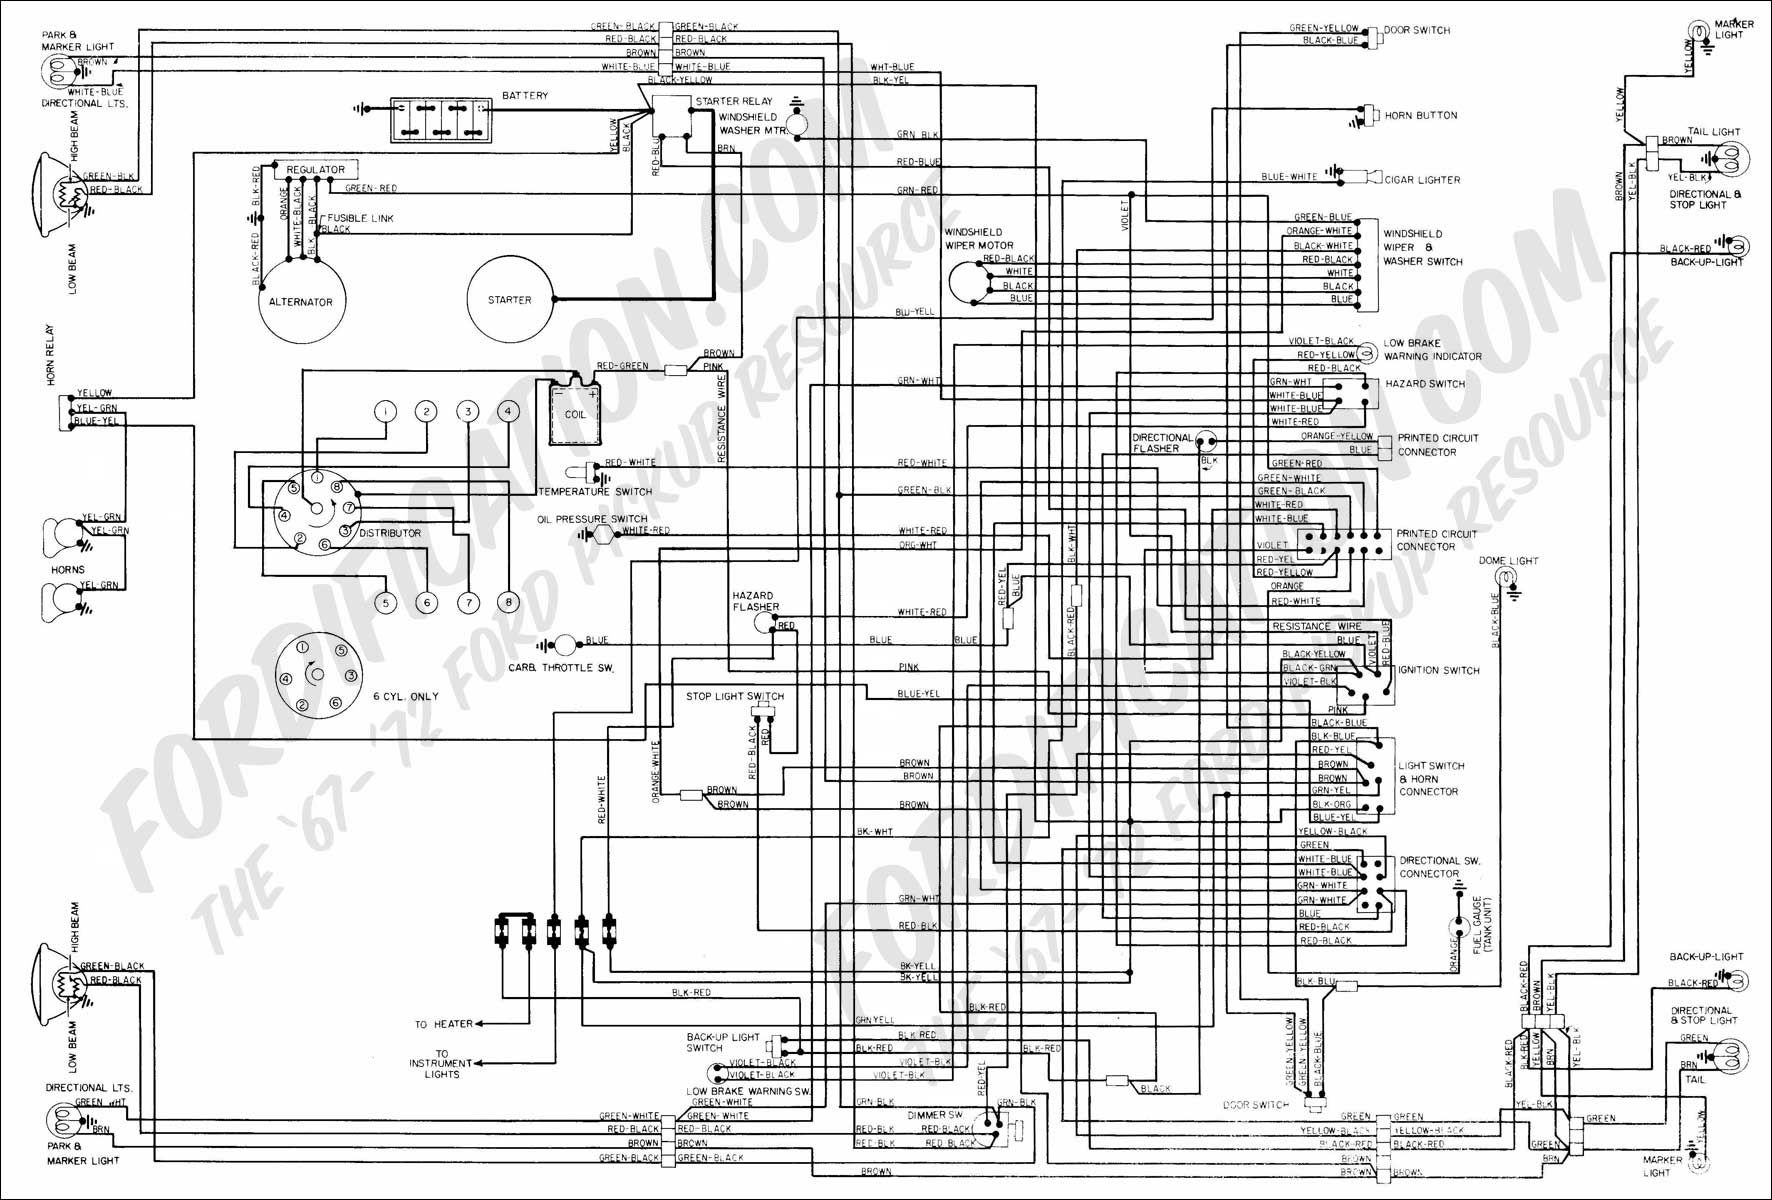 be873db495753211c2fc9a563f039b29 solenoid 1971 f250 1971 ford f100 wiring diagram www ford 1971 ford f250 wiring diagram at mr168.co